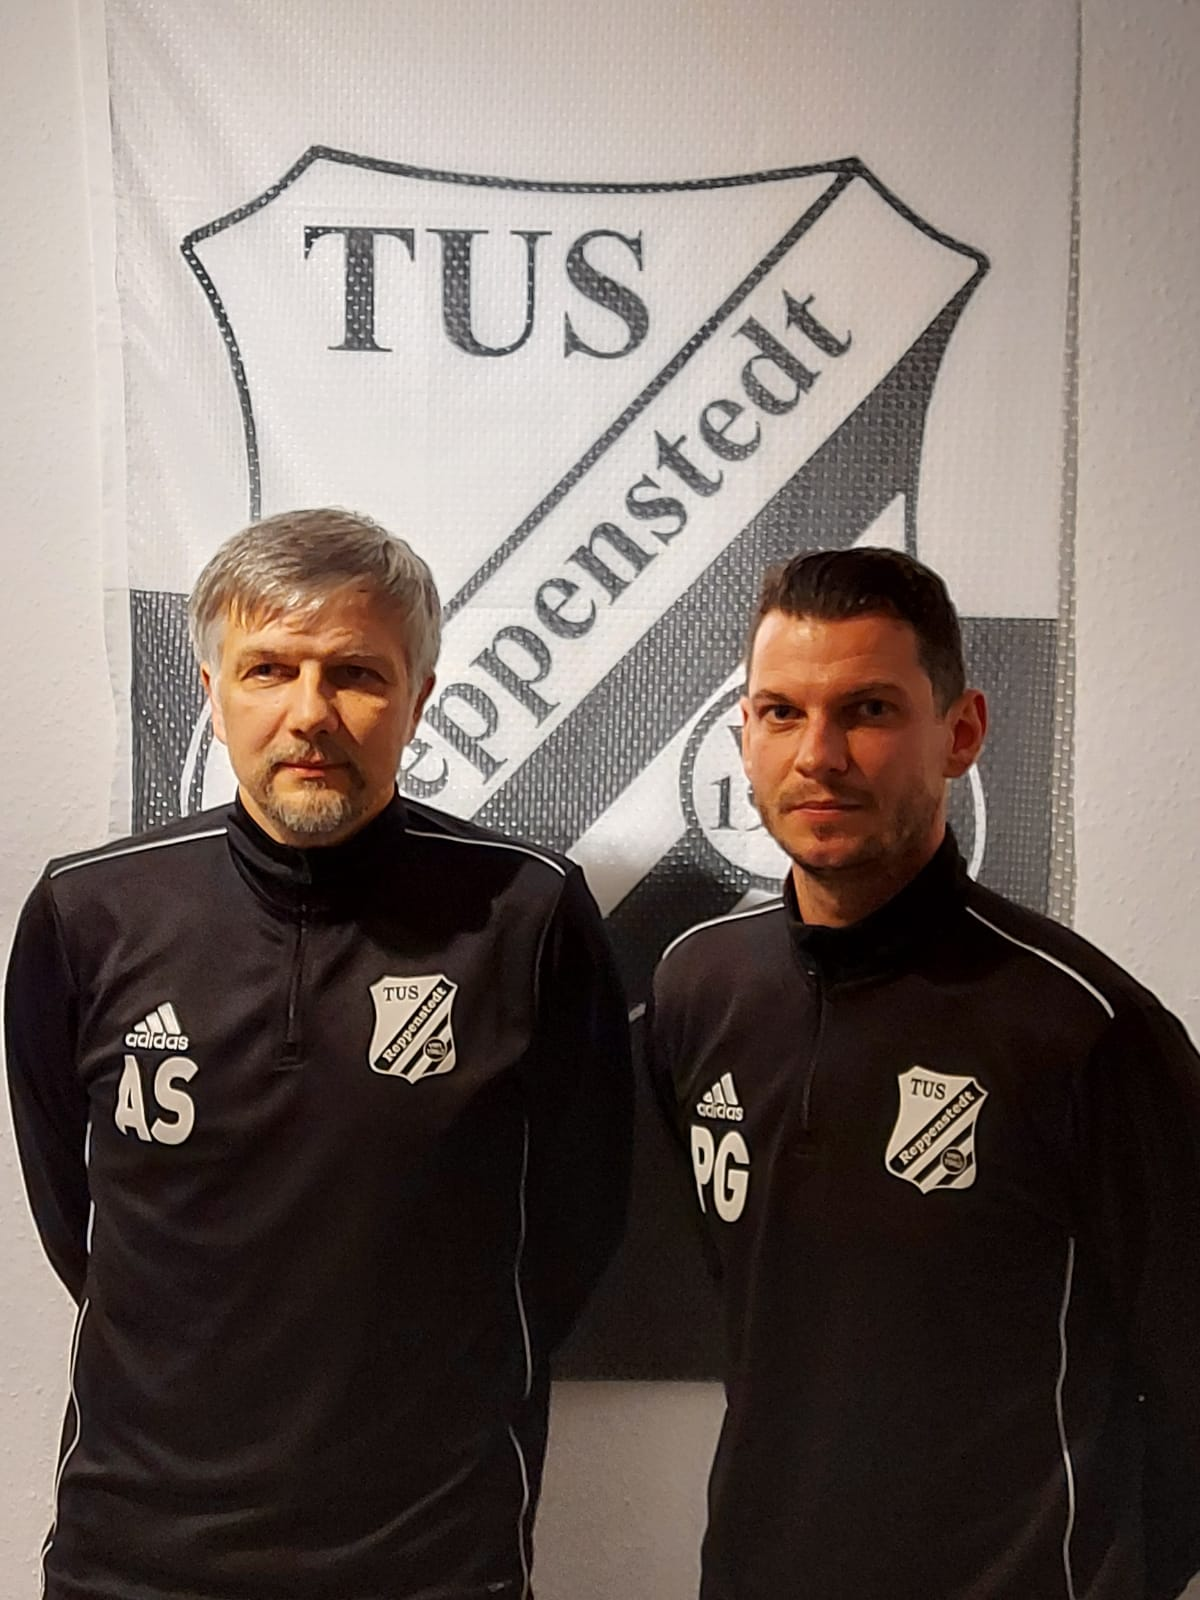 Tus Reppenstedt